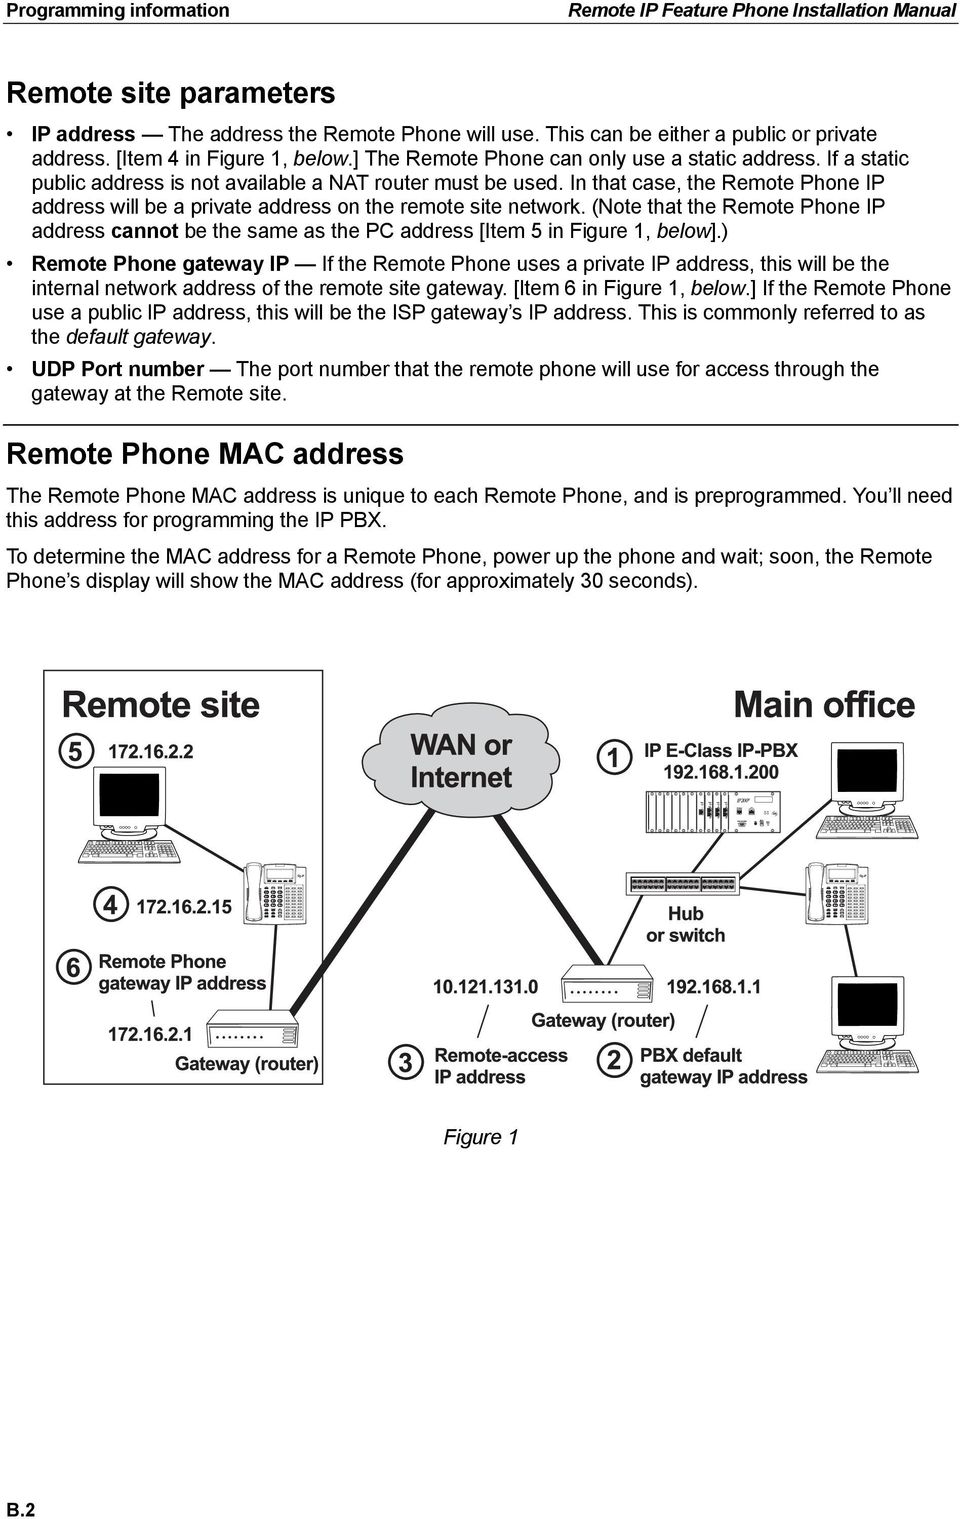 In that case, the Remote Phone IP address will be a private address on the remote site network. (Note that the Remote Phone IP address cannot be the same as the PC address [Item 5 in Figure 1, below].